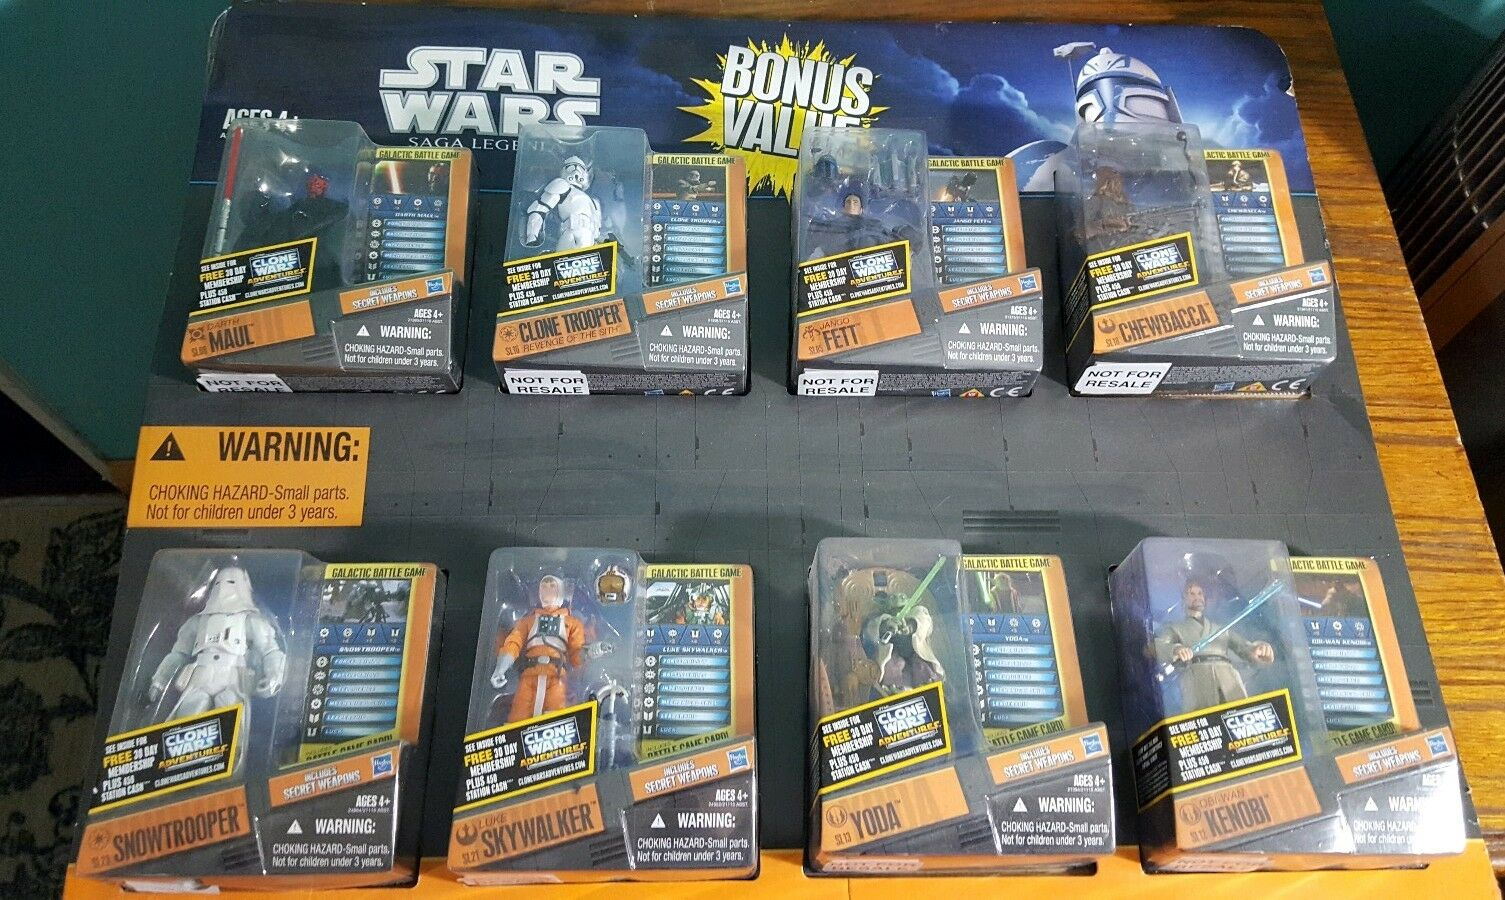 Star Wars Saga Collection Bonus Value